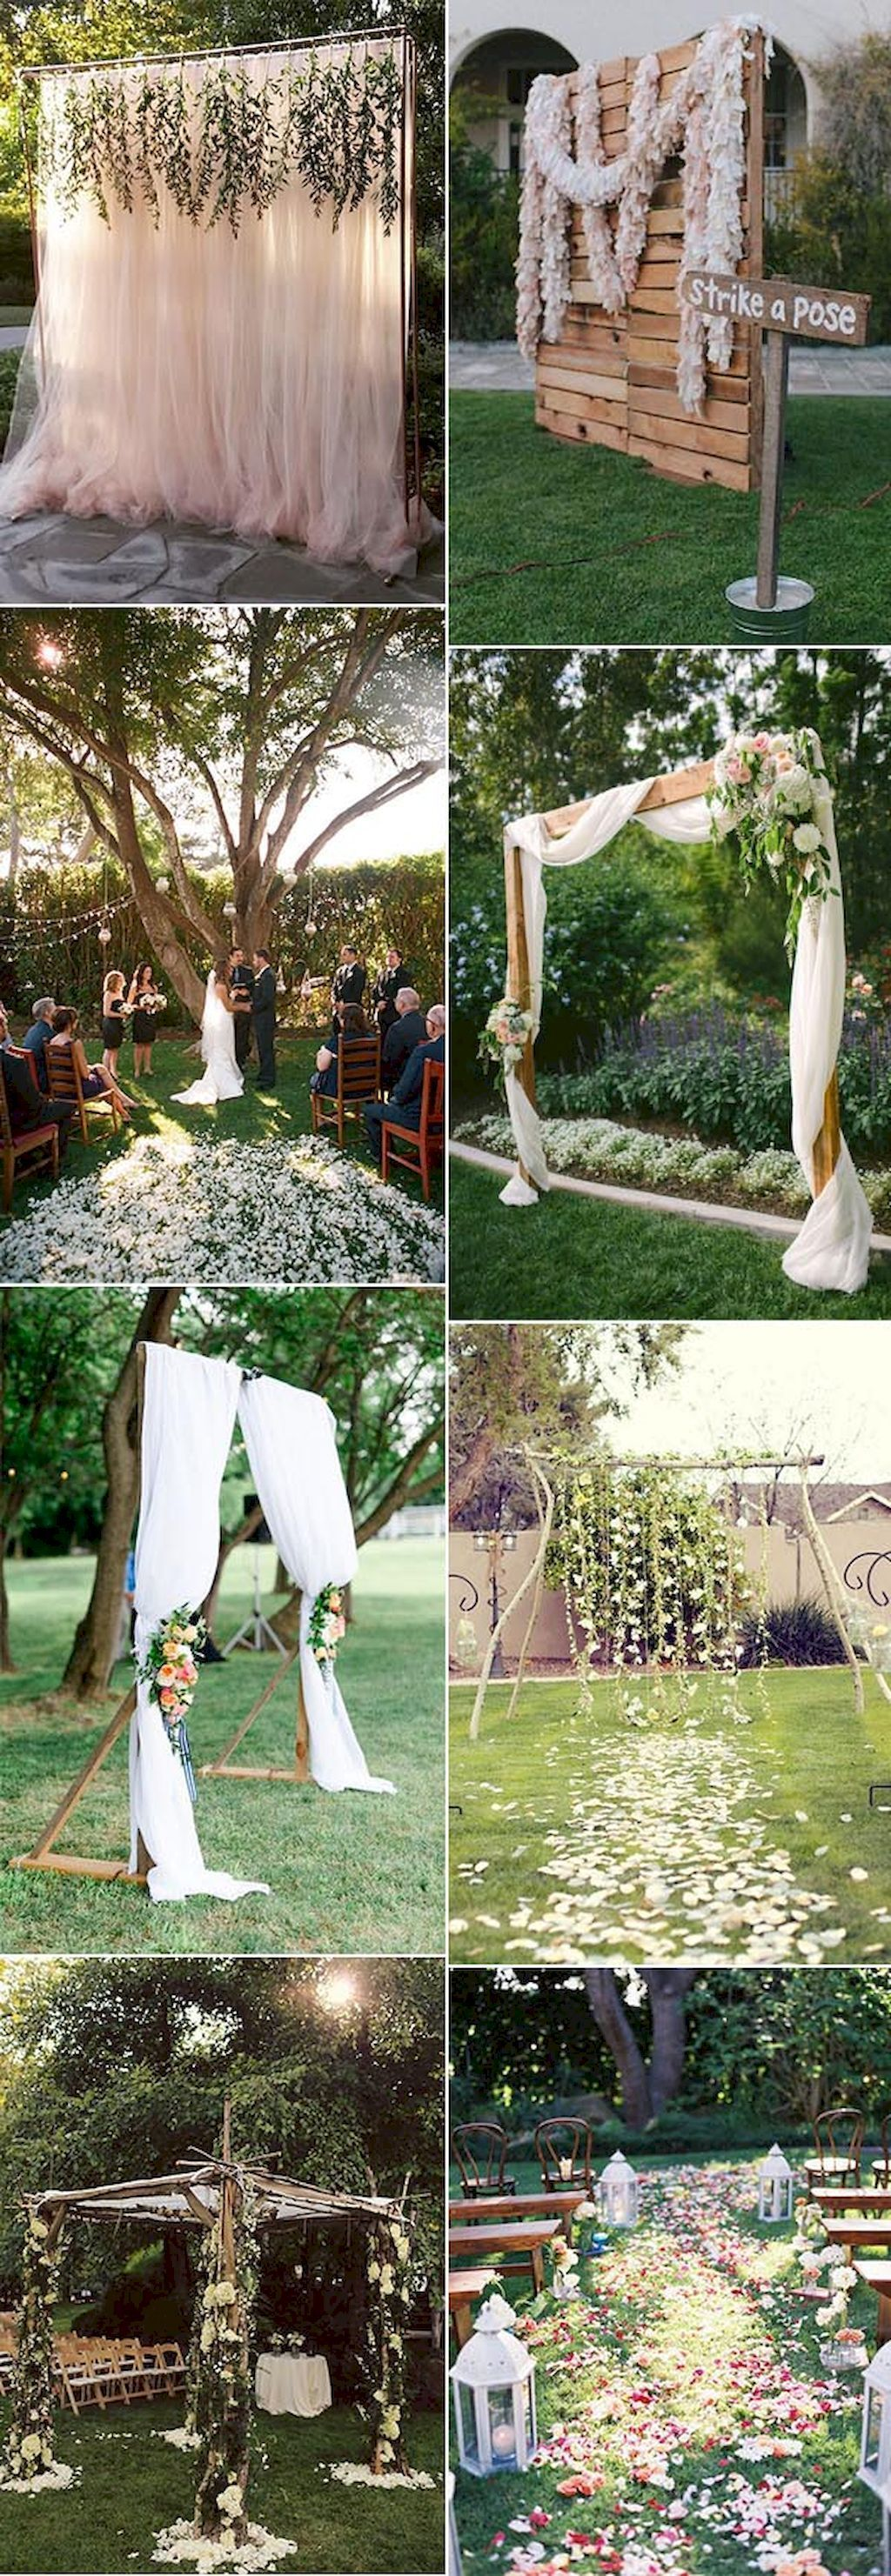 50s wedding decoration ideas  Awesome  Elegant Outdoor Wedding Decor Ideas on A Budget